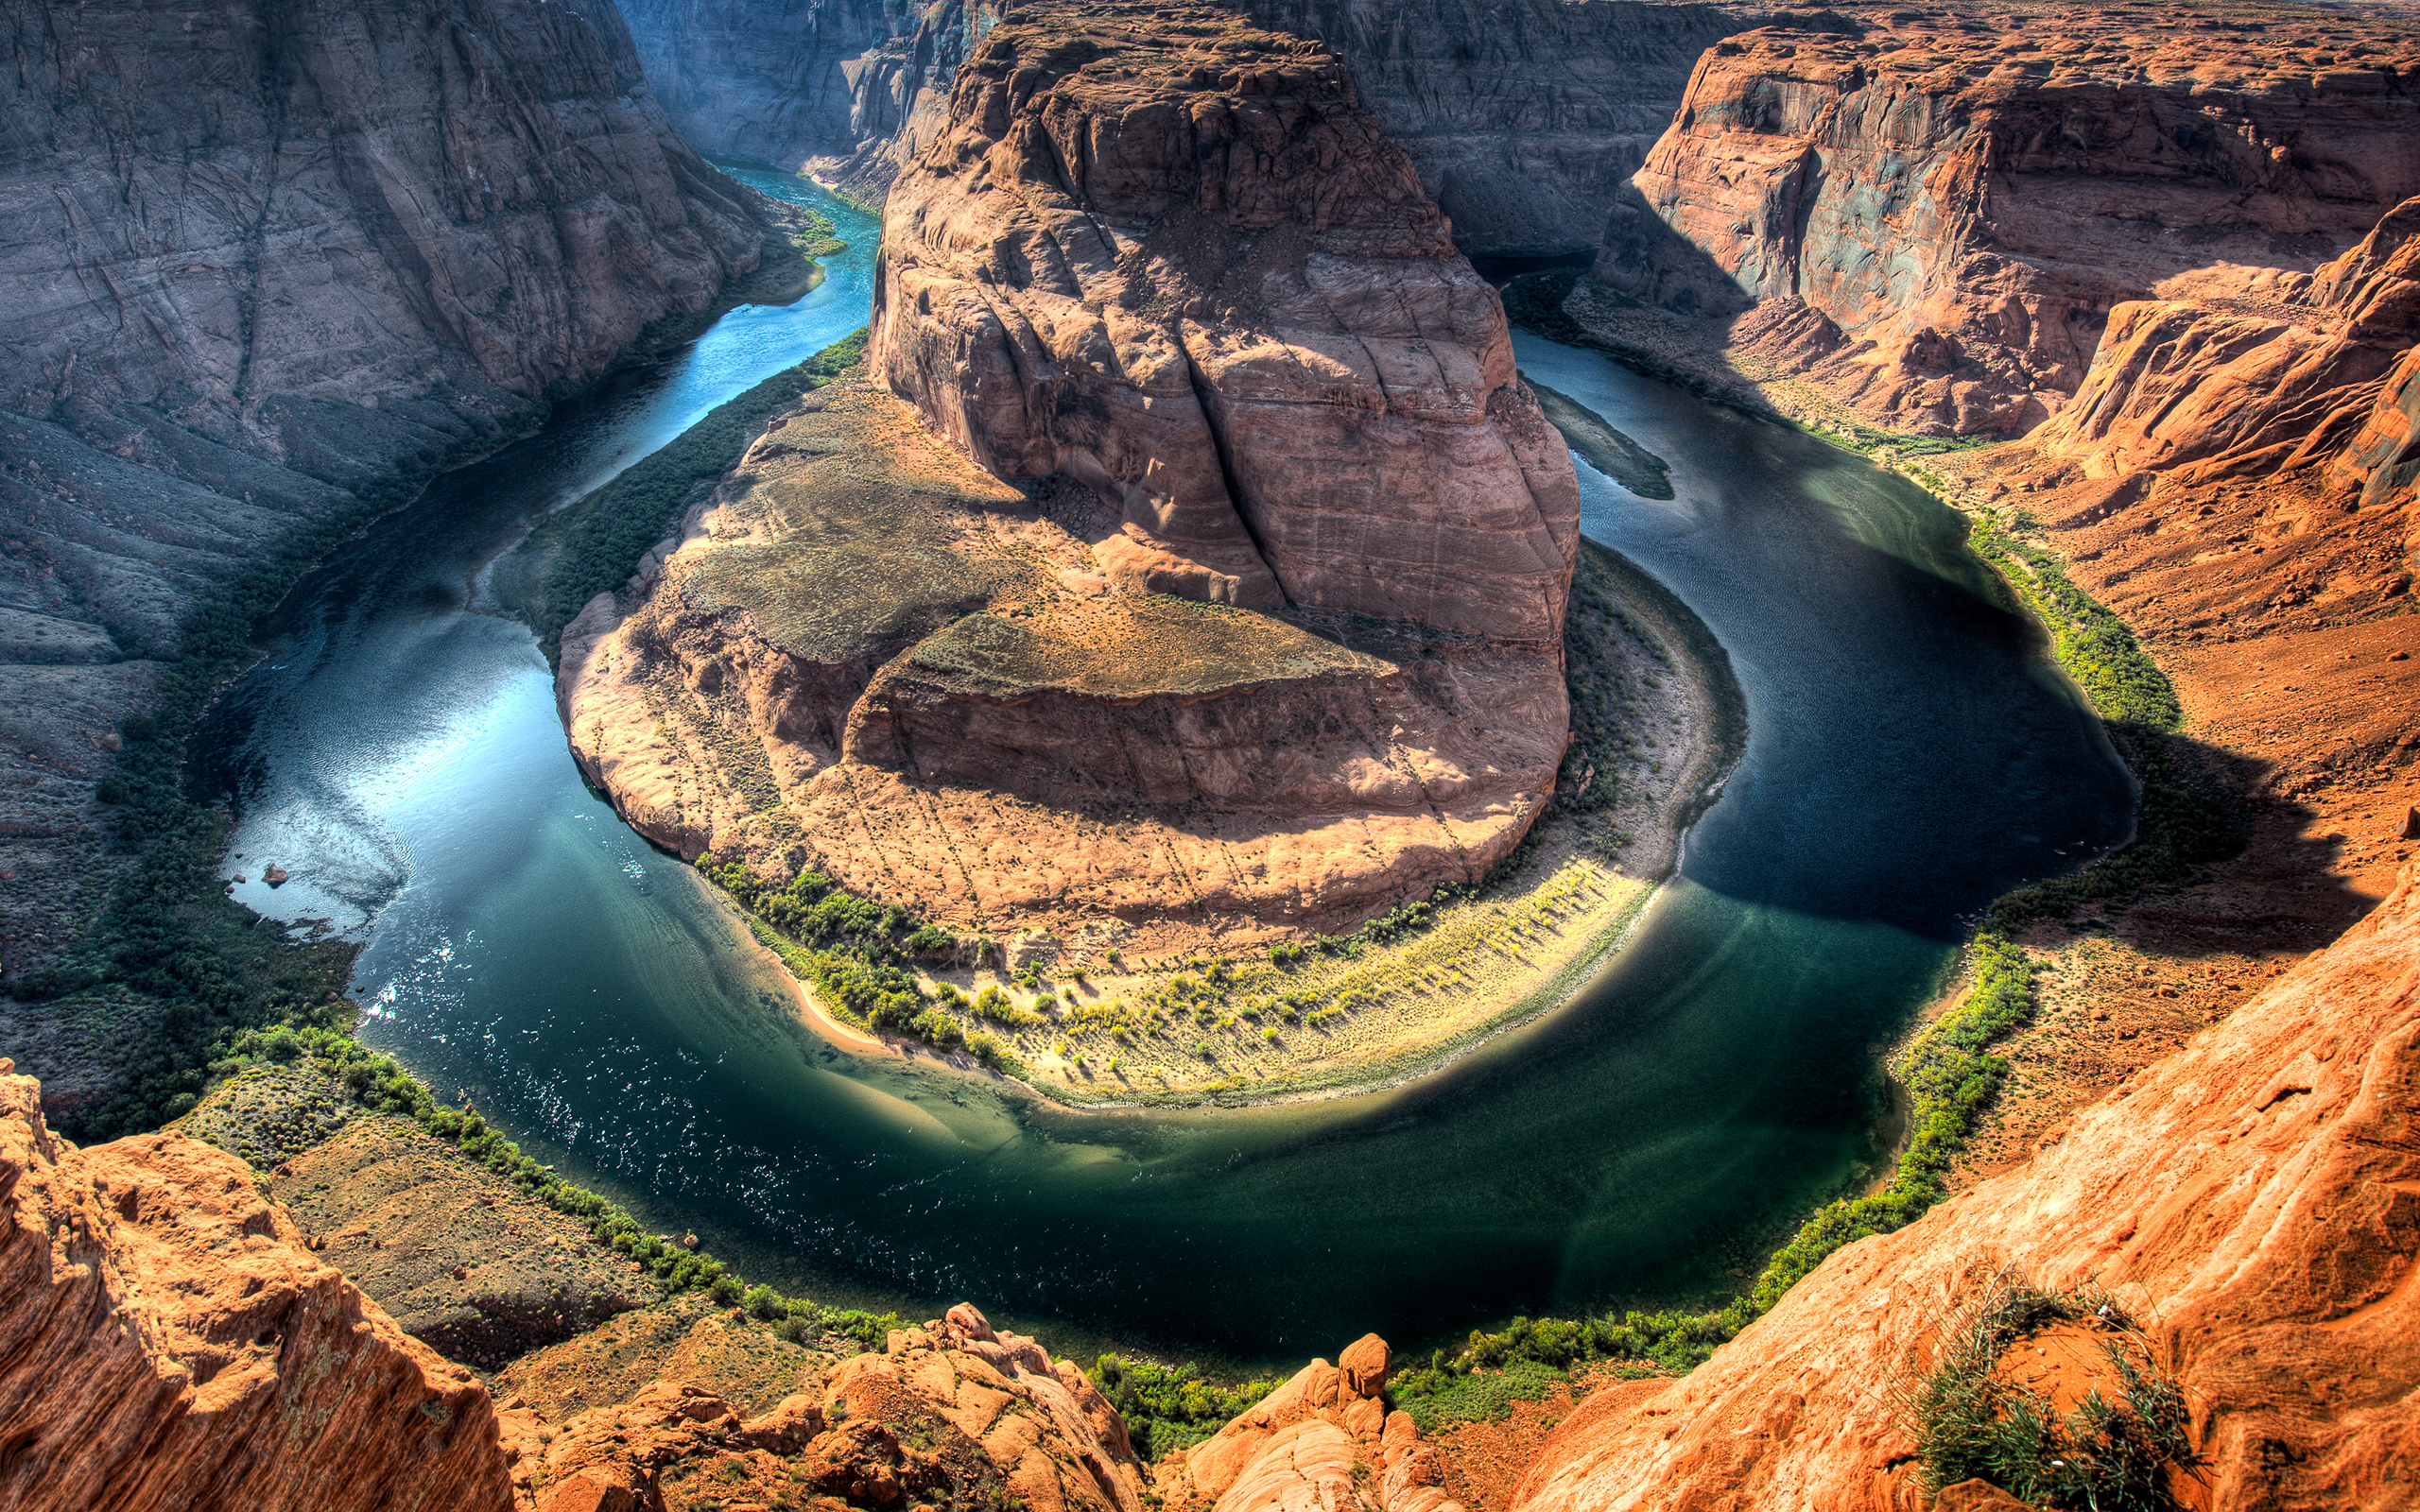 Horseshoe Bend Arizona 526.49 Kb